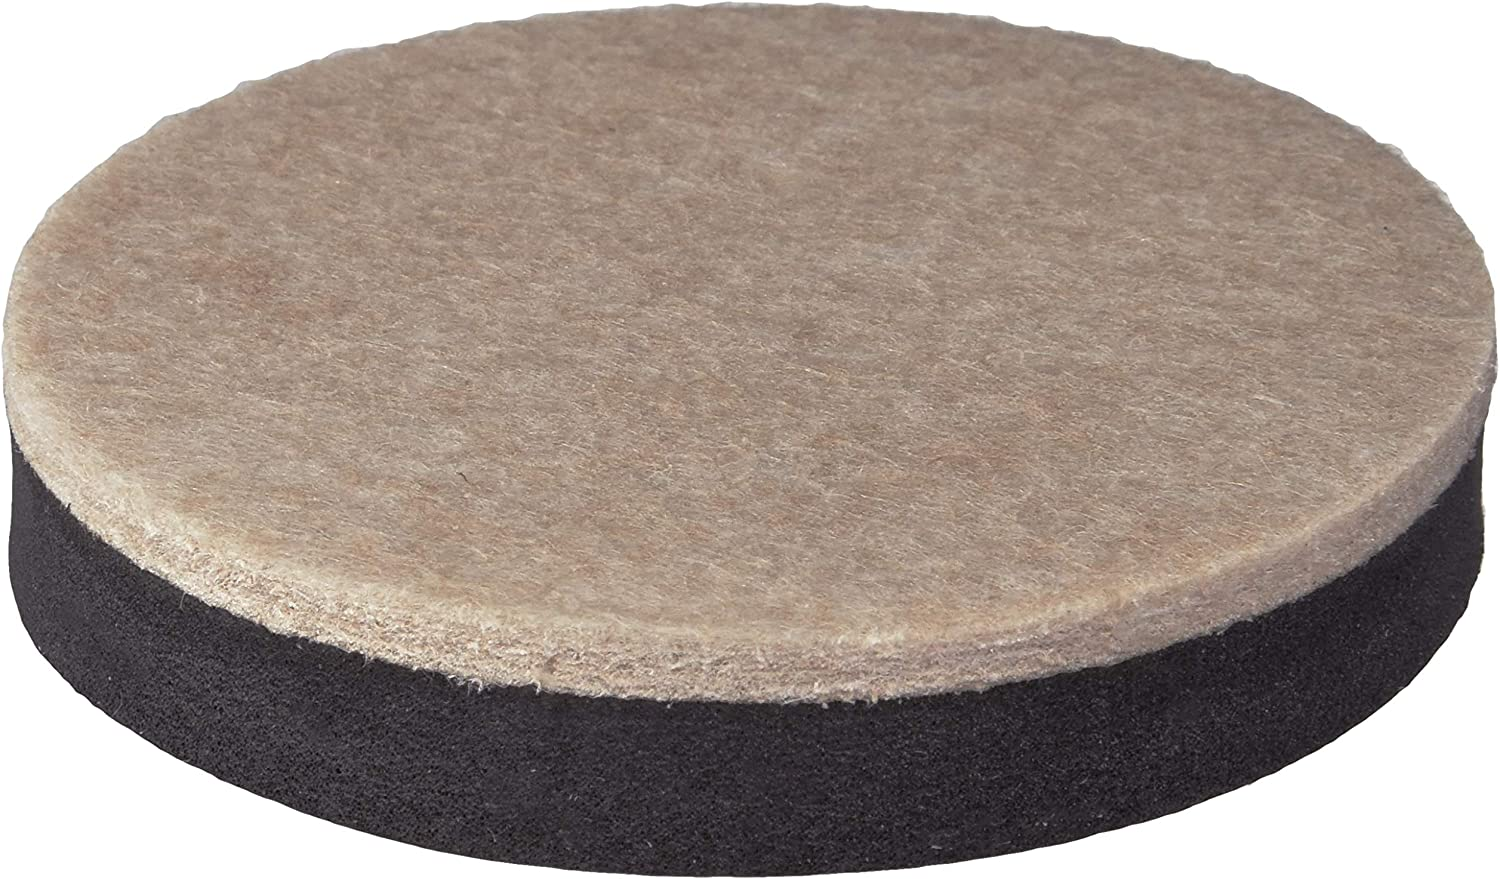 Shepherd Hardware 9407 3-1/2-Inch Reusable, Round, Felt Furniture Slider Pads, 4-Pack